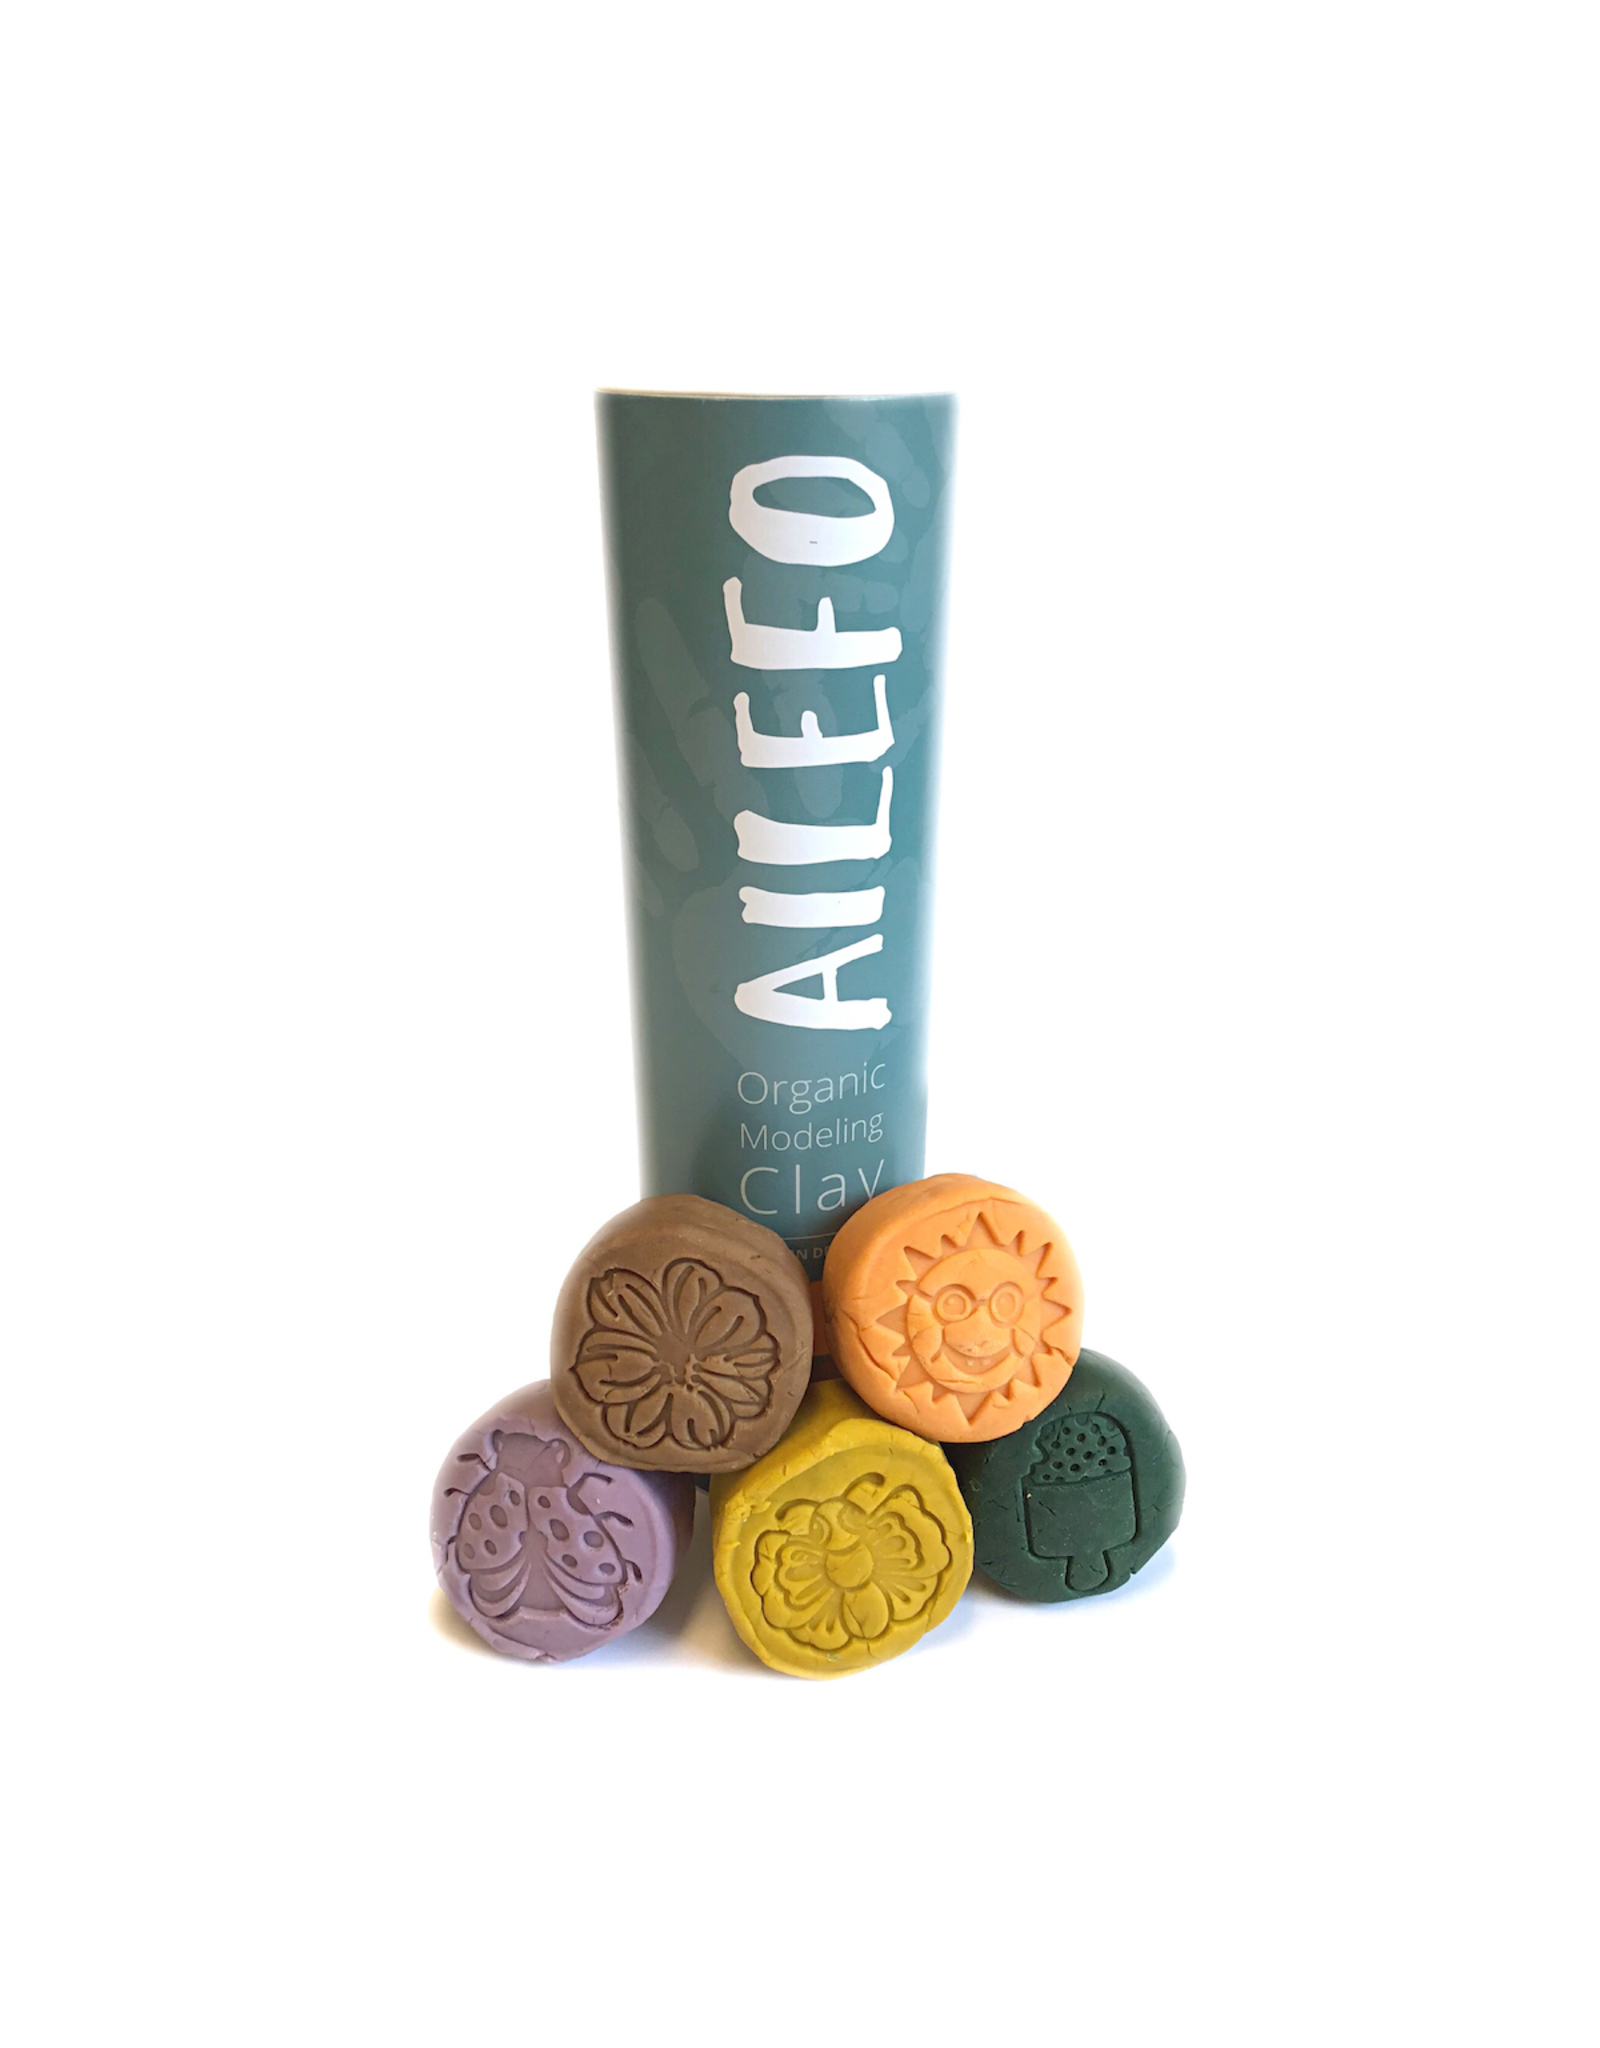 Ailefo Ailefo - Organic modeling clay-Forest colors-small tube